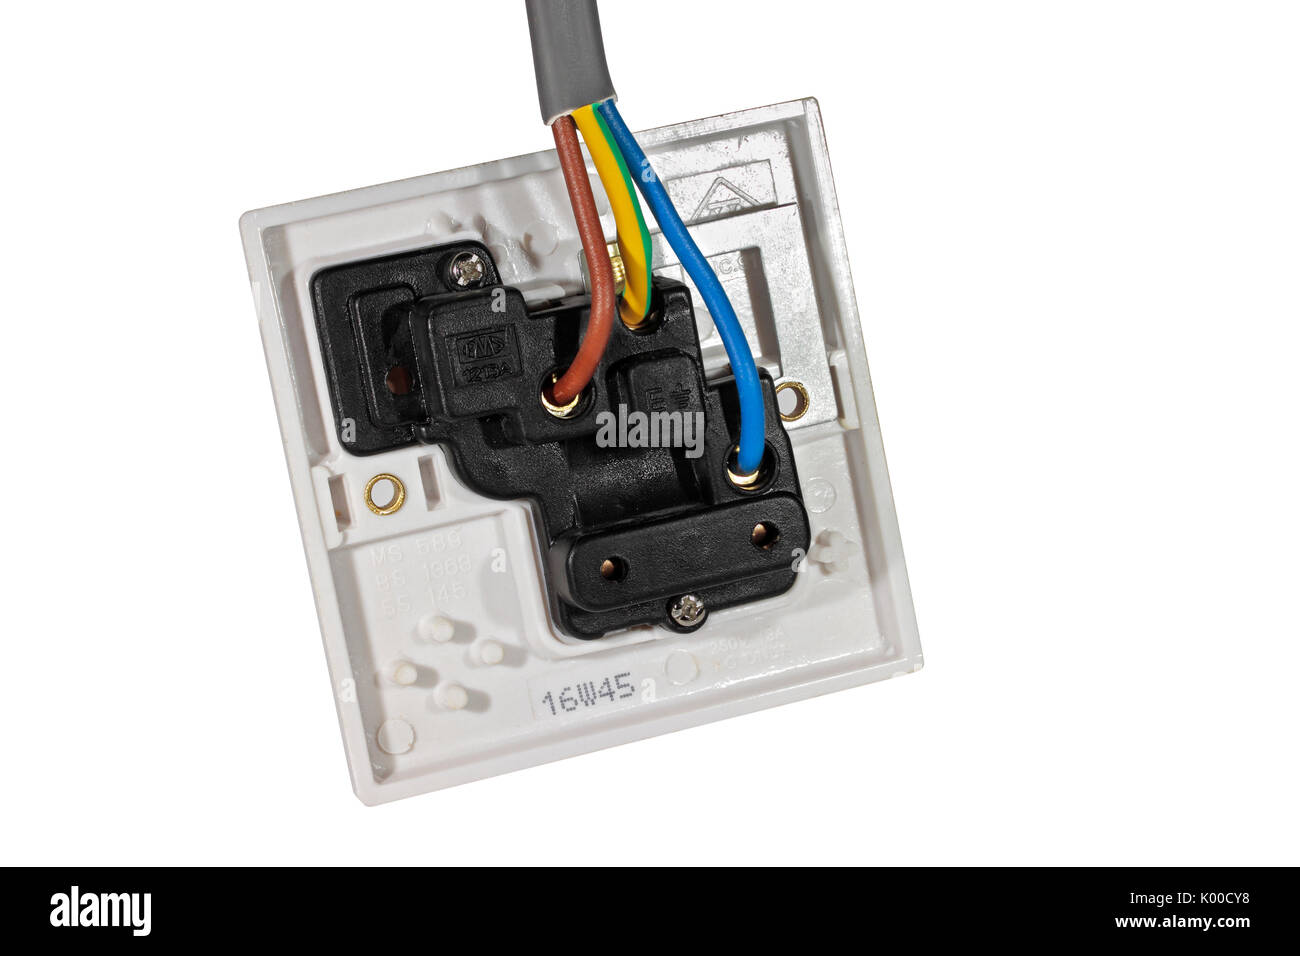 electrical socket stock photos electrical socket stock images alamy rh alamy com electrical socket wiring electric socket wiring diagram uk